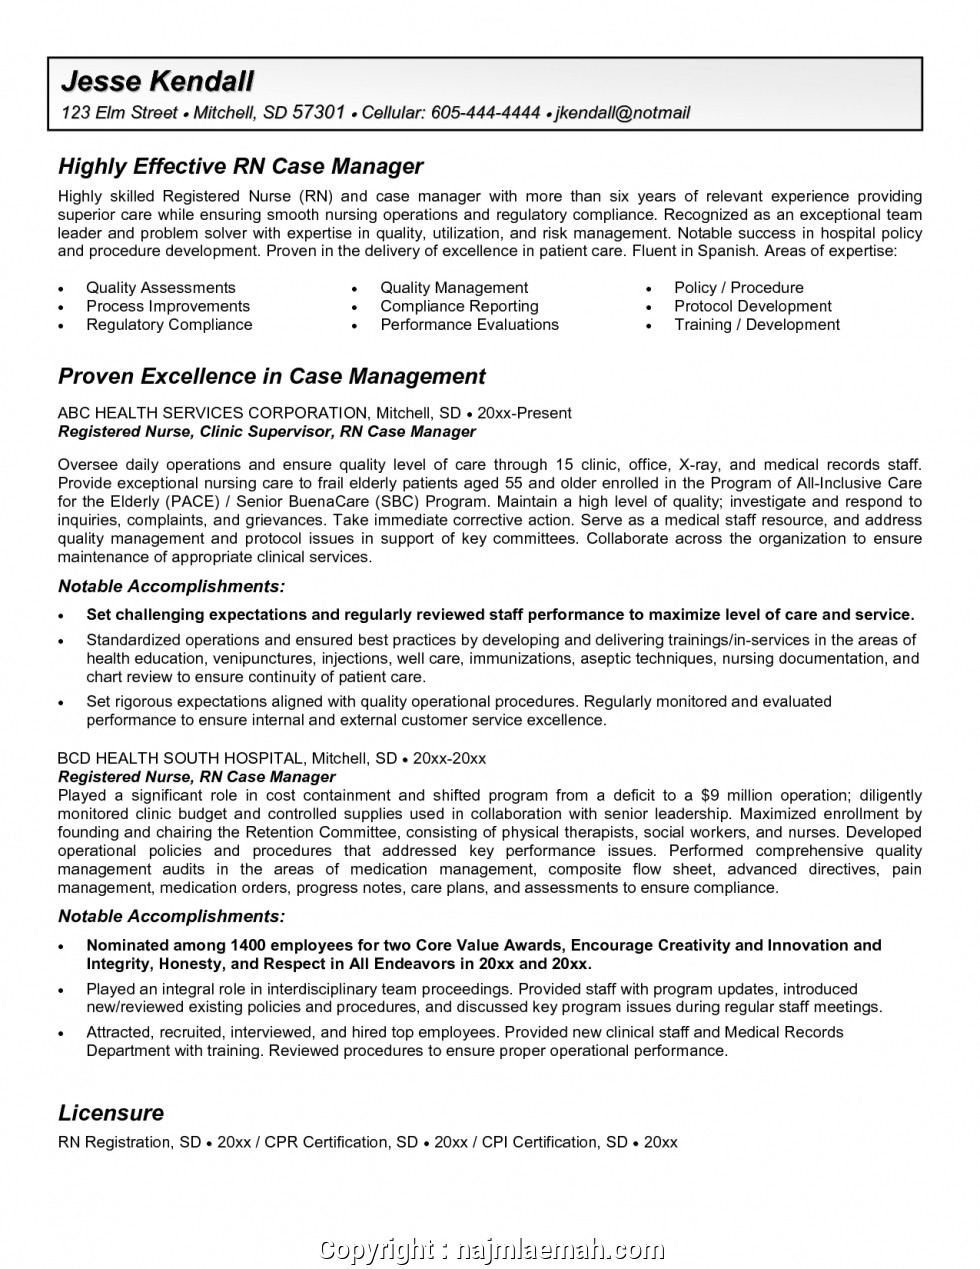 nurse case manager resume free templates creative management examples character artist Resume Nurse Case Manager Resume